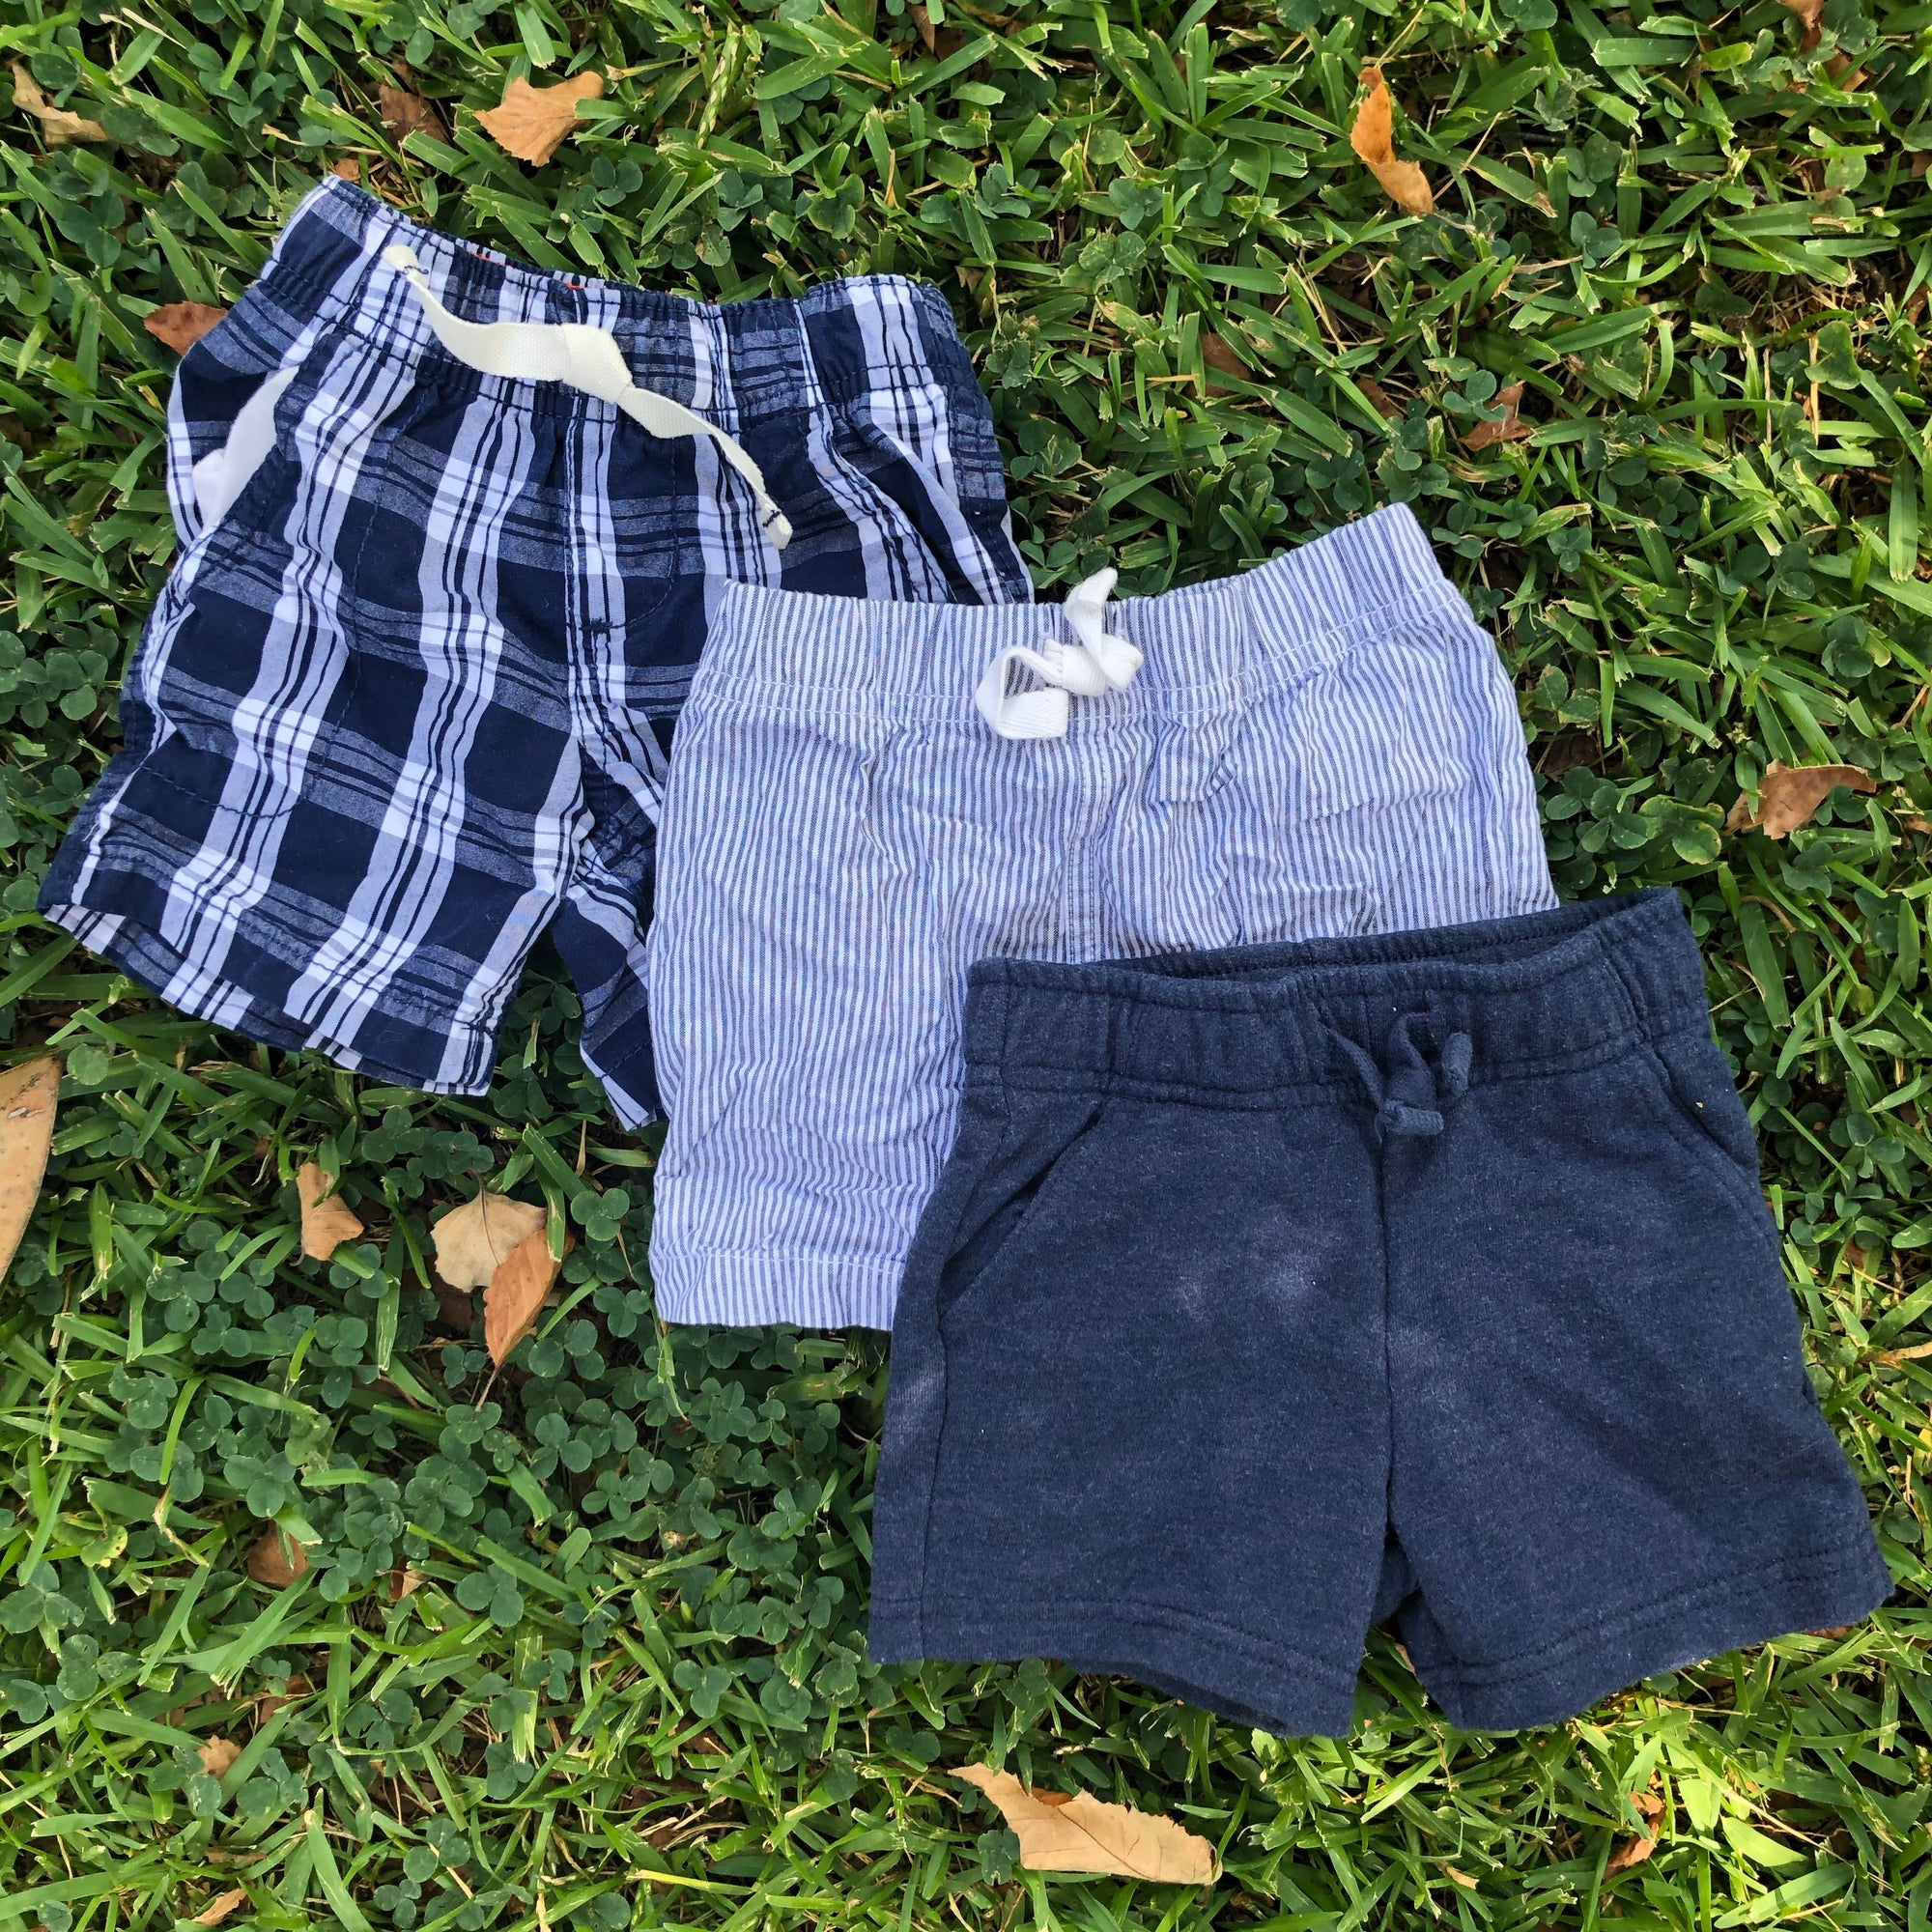 Resale 12 m Carter's & Cat & Jack Navy Plaid, Stripes & Solid Shorts Set